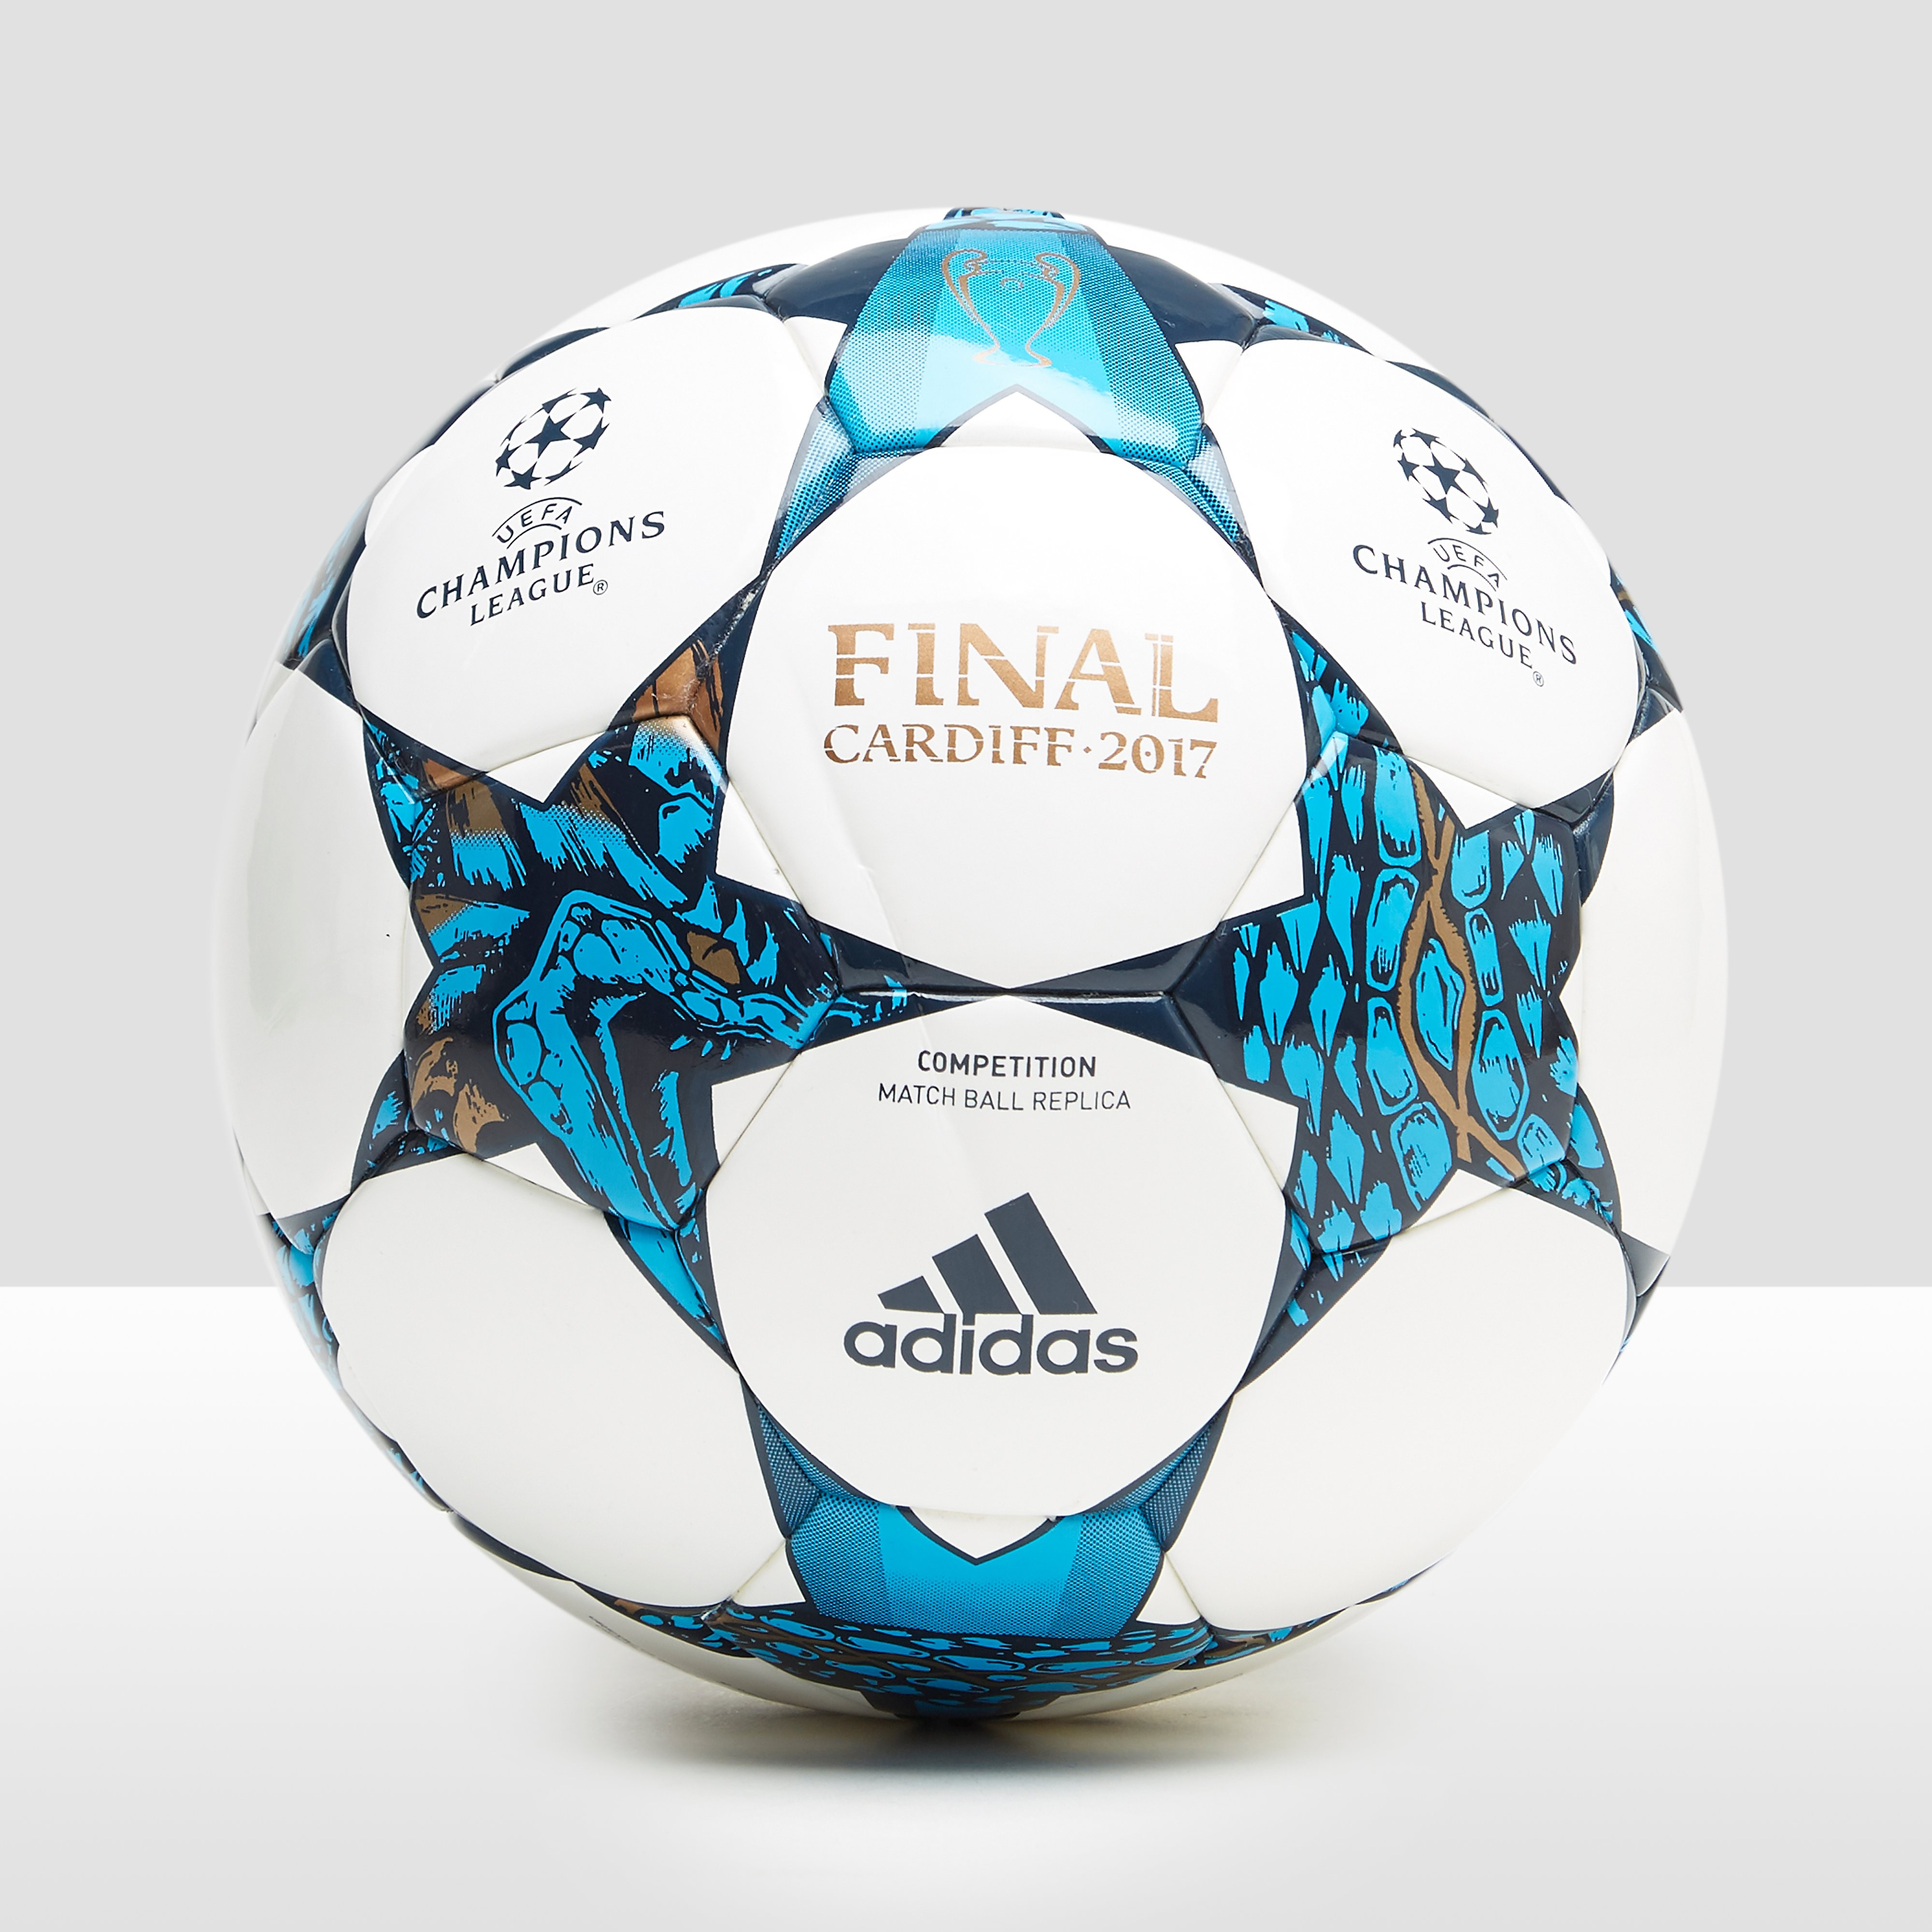 ADIDAS FINALE CARDIFF VOETBAL WIT/BLAUW